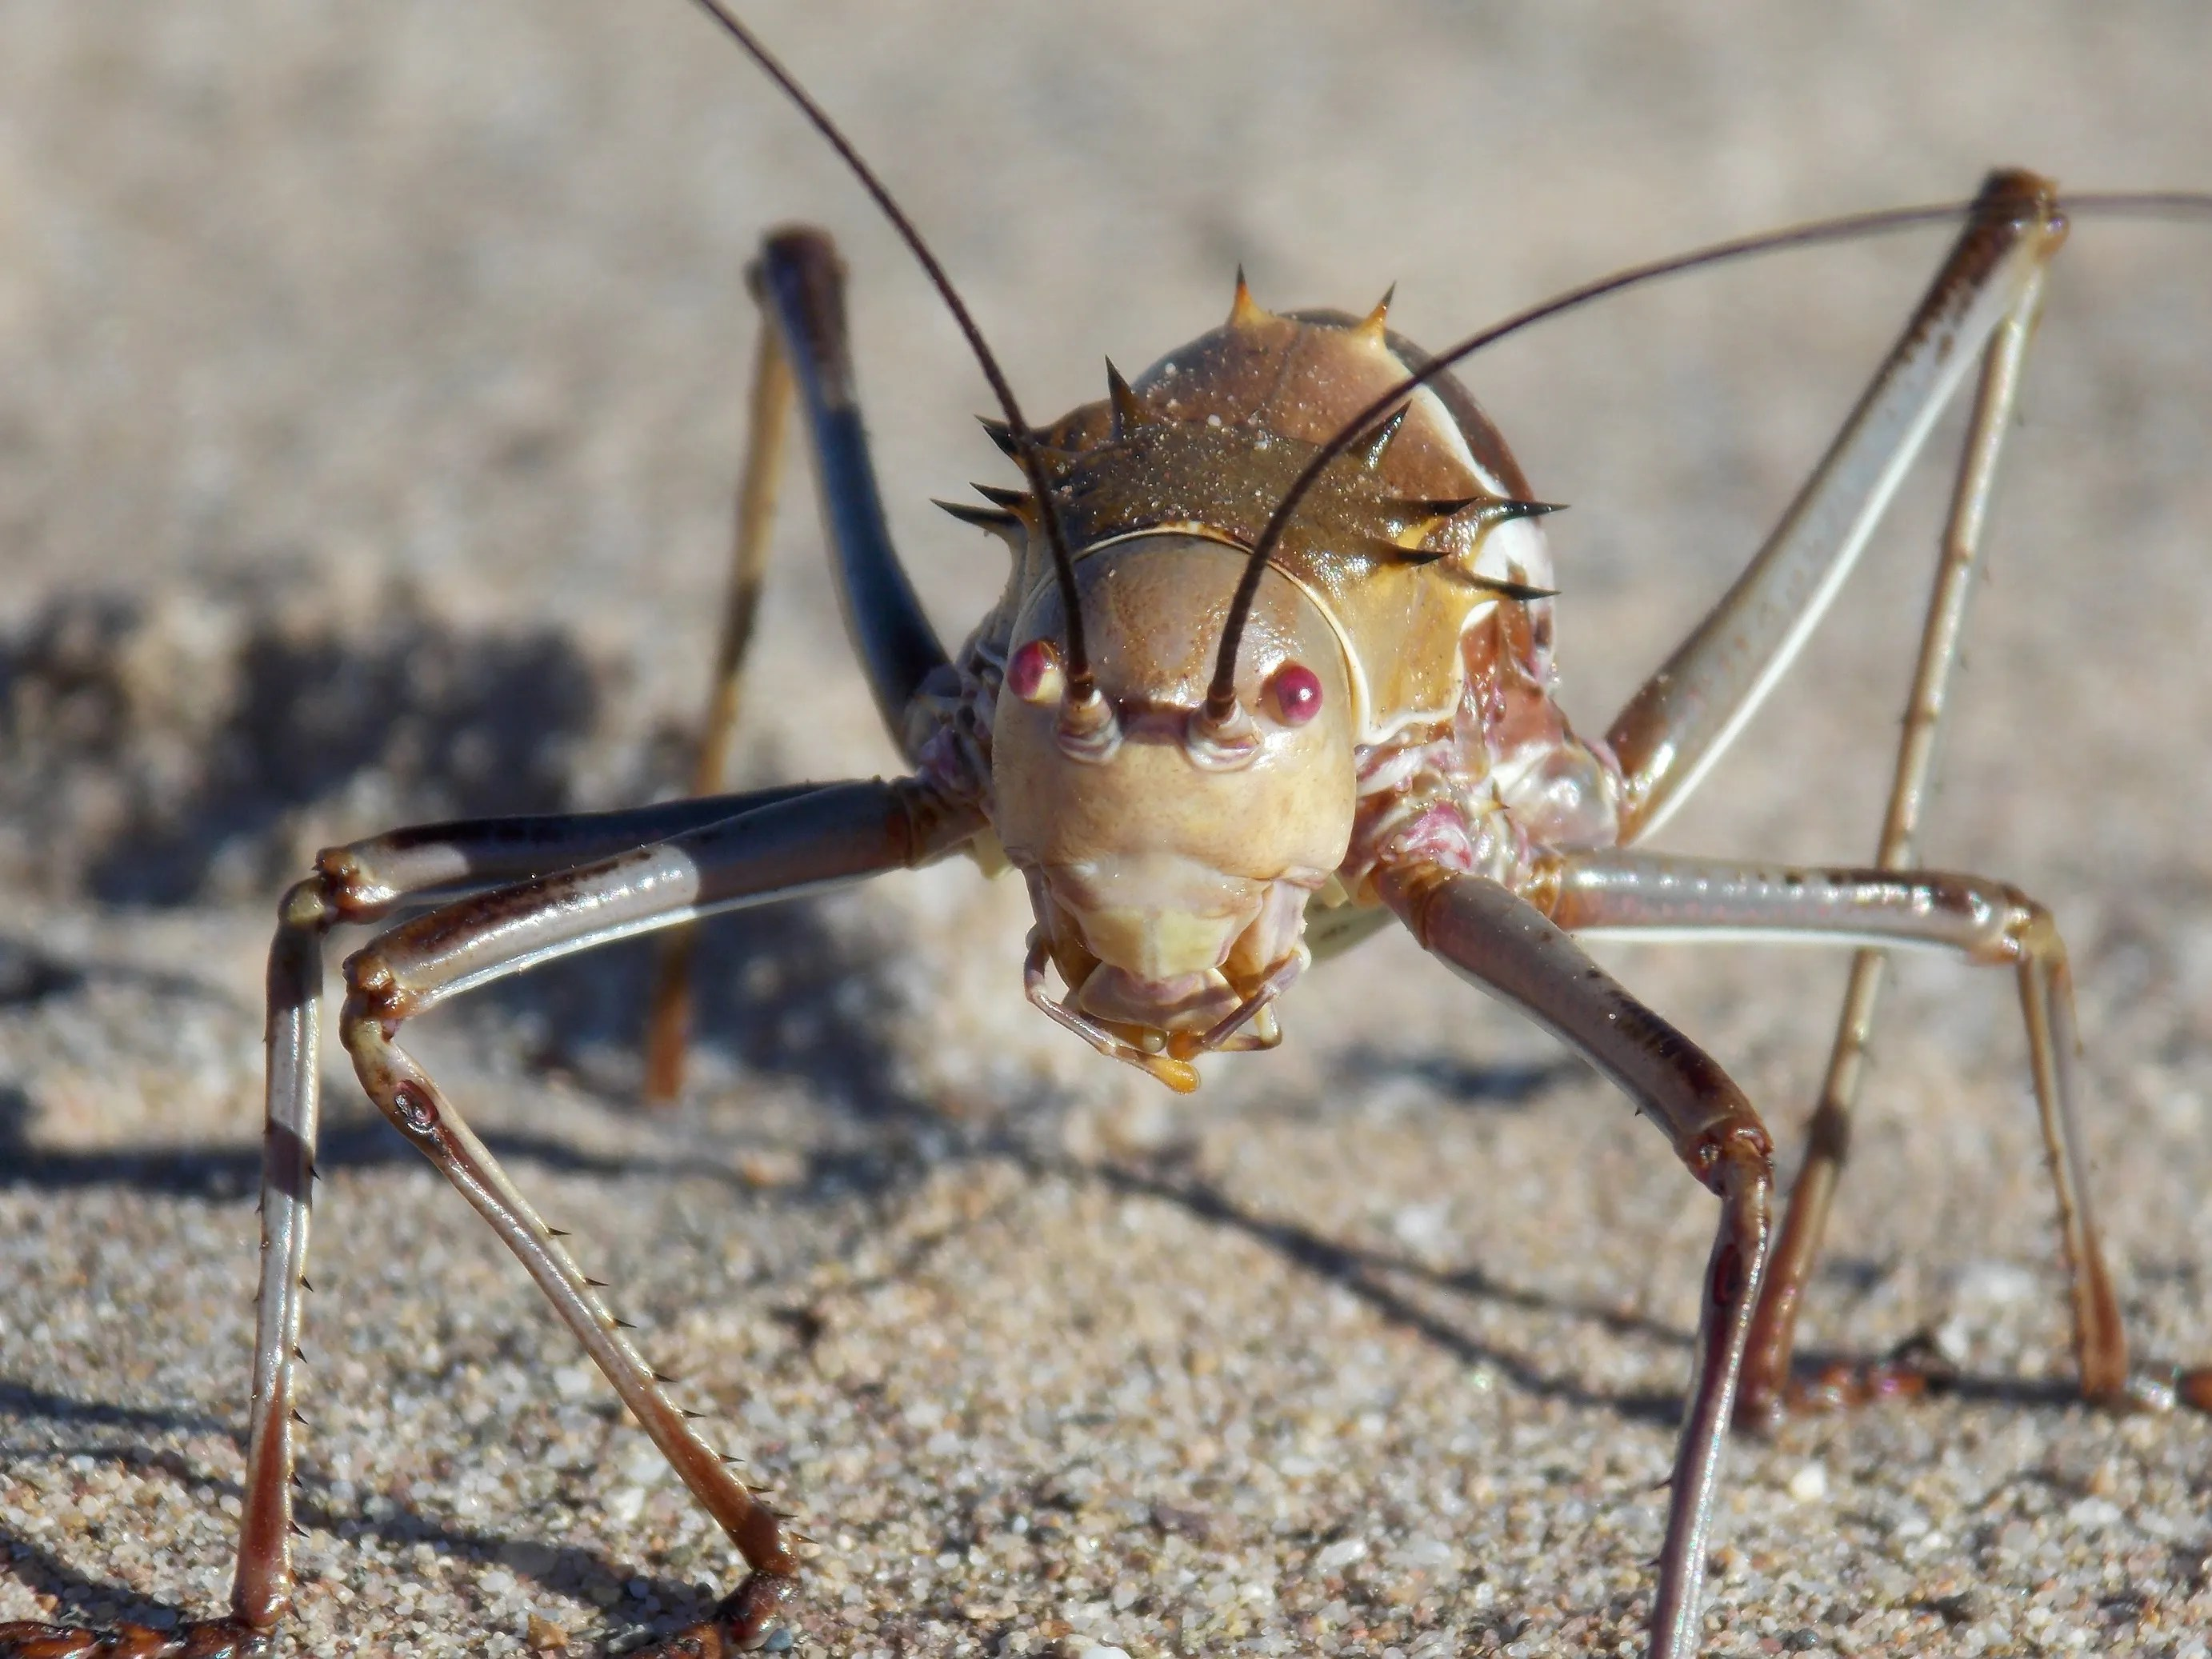 Compelling Creature Facts About Armoured Bush Cricket Creature Facts About Armoured Bush Cricket What Do Crickets Eat Your House Why Do Crickets Eat Cardboard houzz-03 What Do Crickets Eat